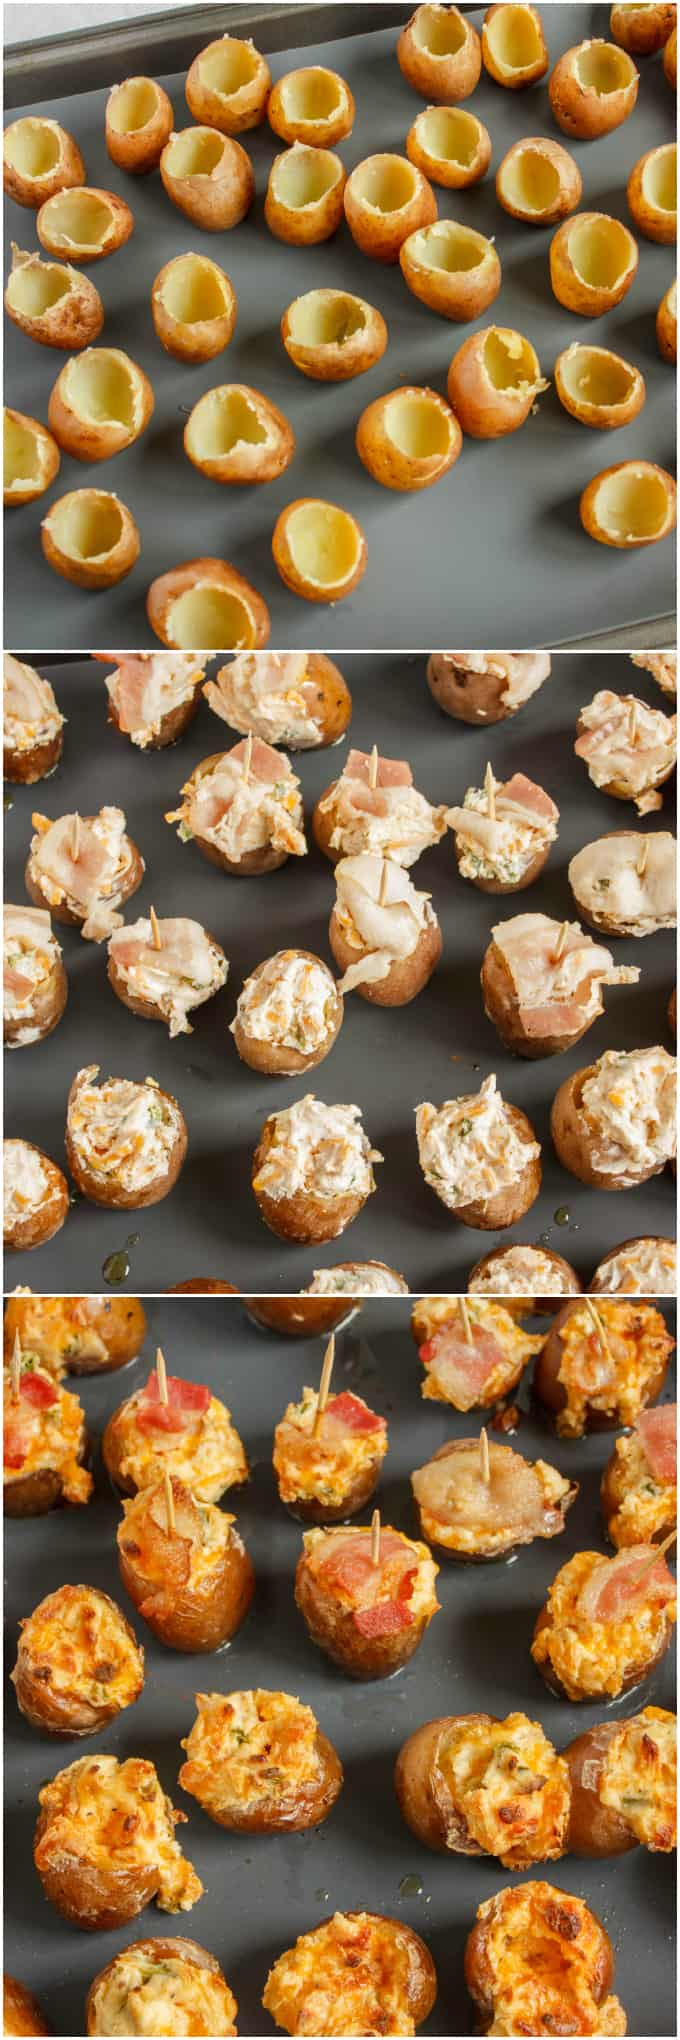 Jalapeno Popper Stuffed Creamer Potatoes 5